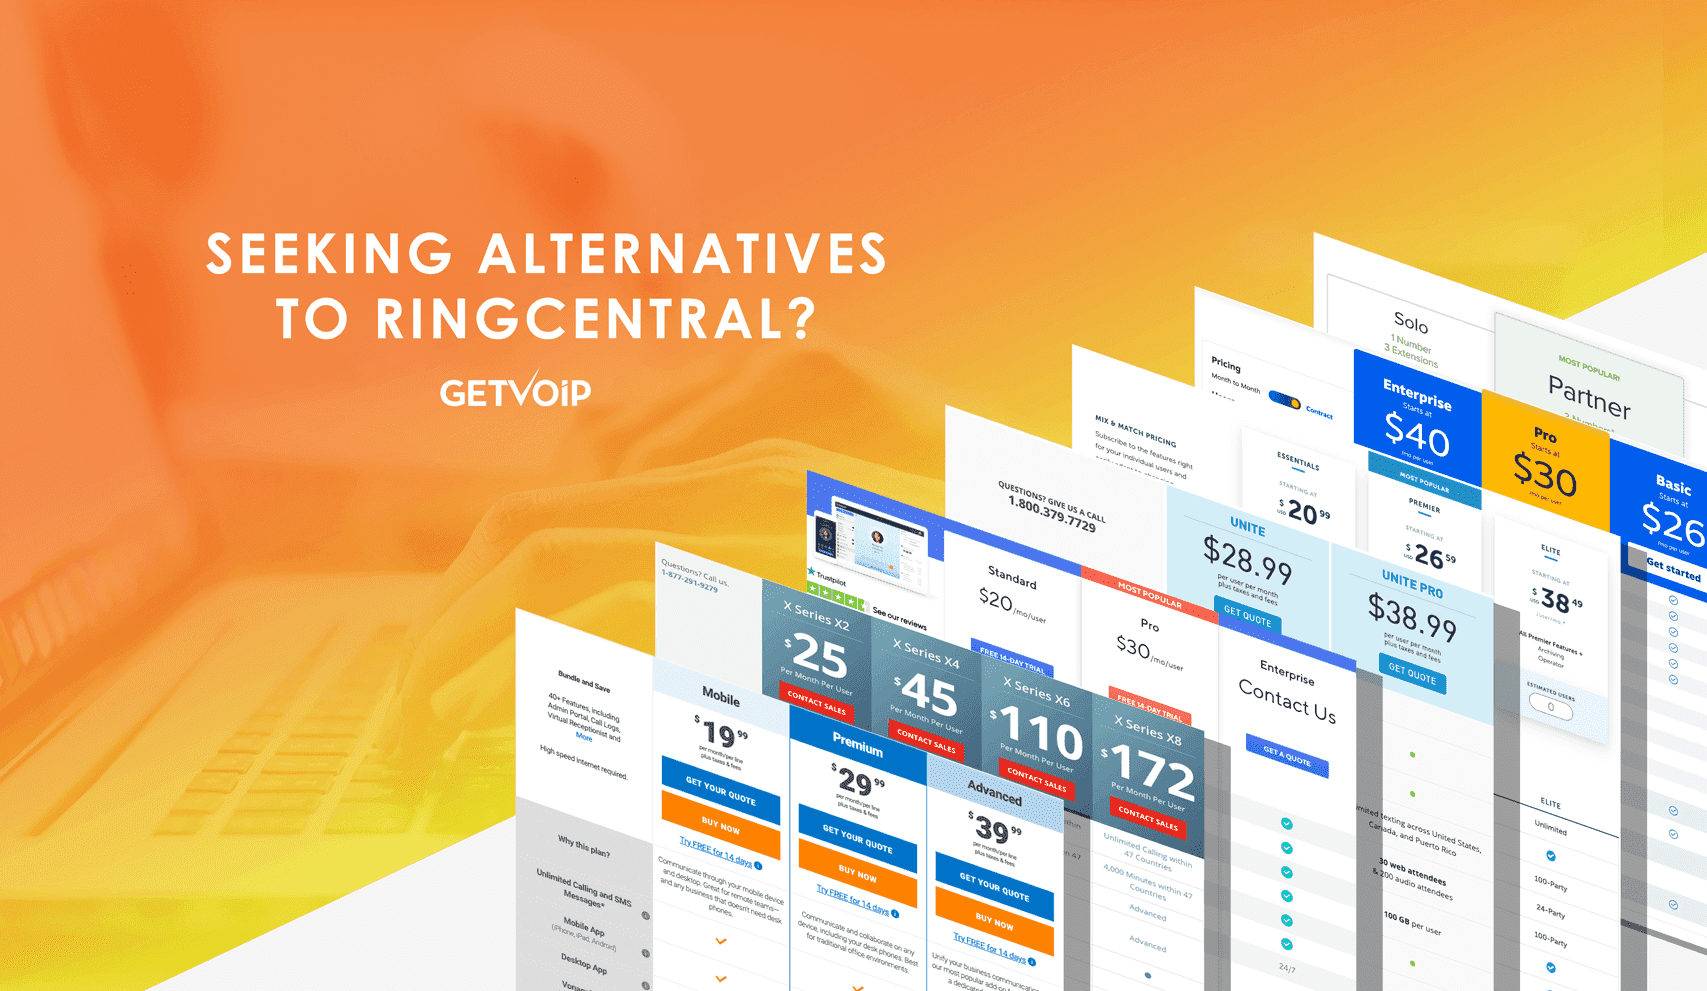 ringcentral alternatives